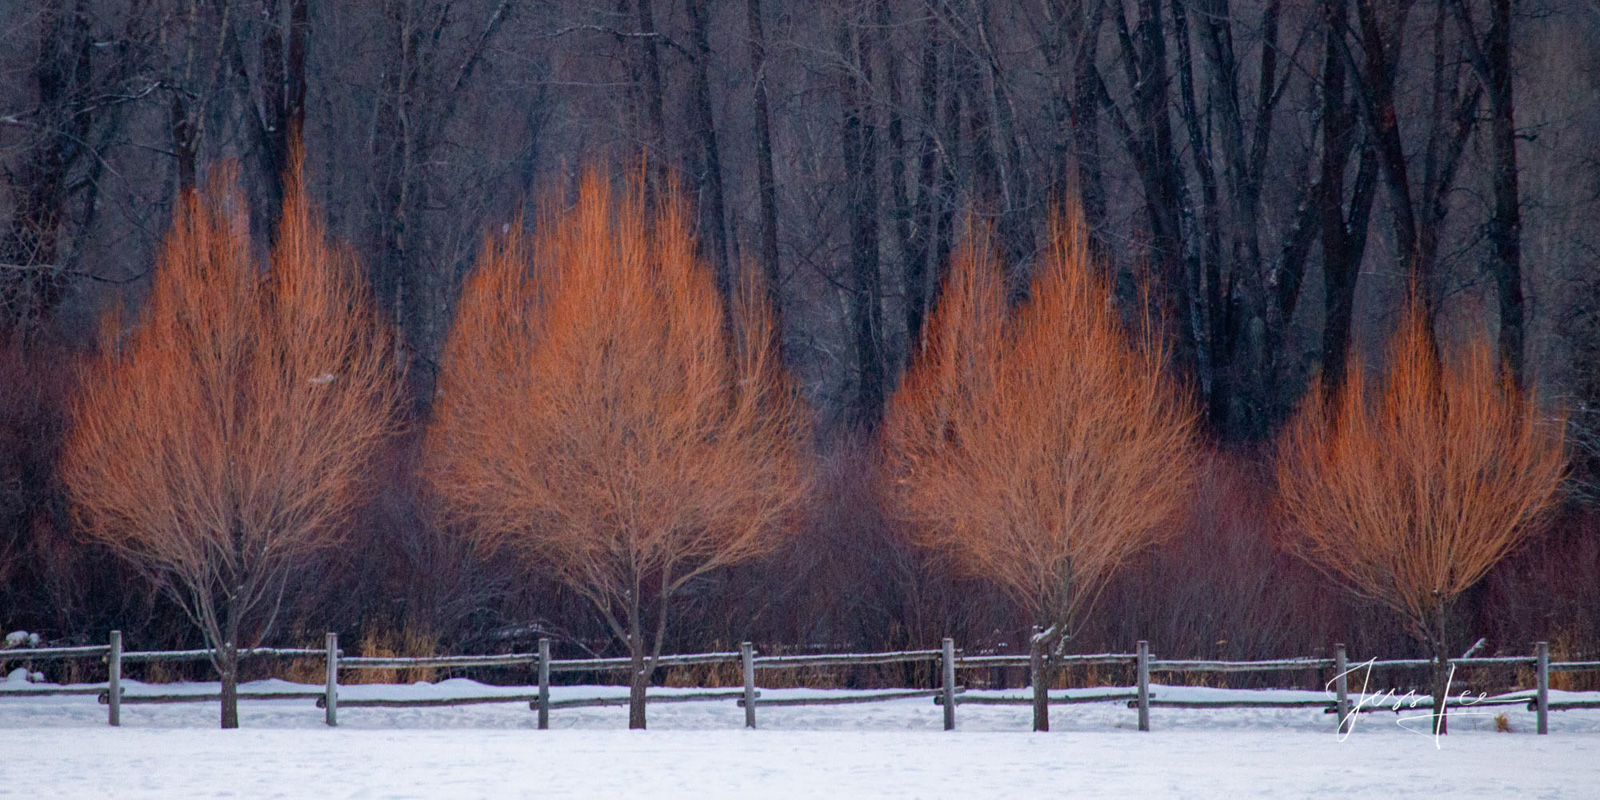 Photograph of Flaming willows used as a landscape decoration to add color to the long winter season in Jackson Hole WyomingWyoming, photo, trees, mountains, jackson hole, western,  grand teton, jackso, photo